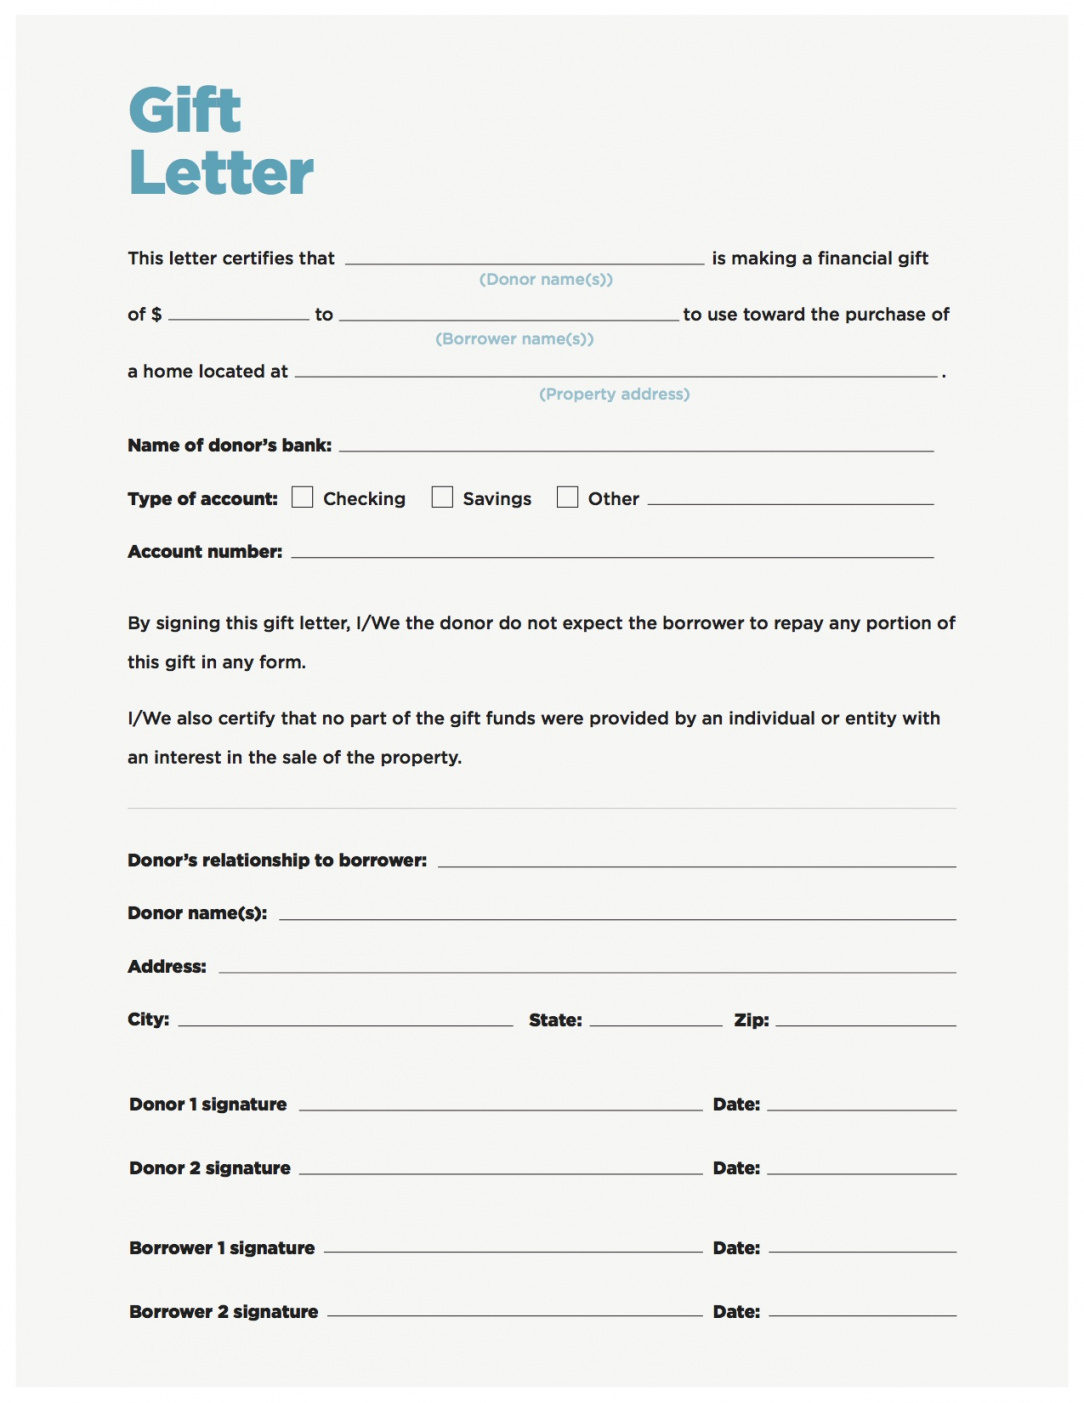 editable 018 gift money can meet your down payment needs nerdwallet letter car gift letter template pdf